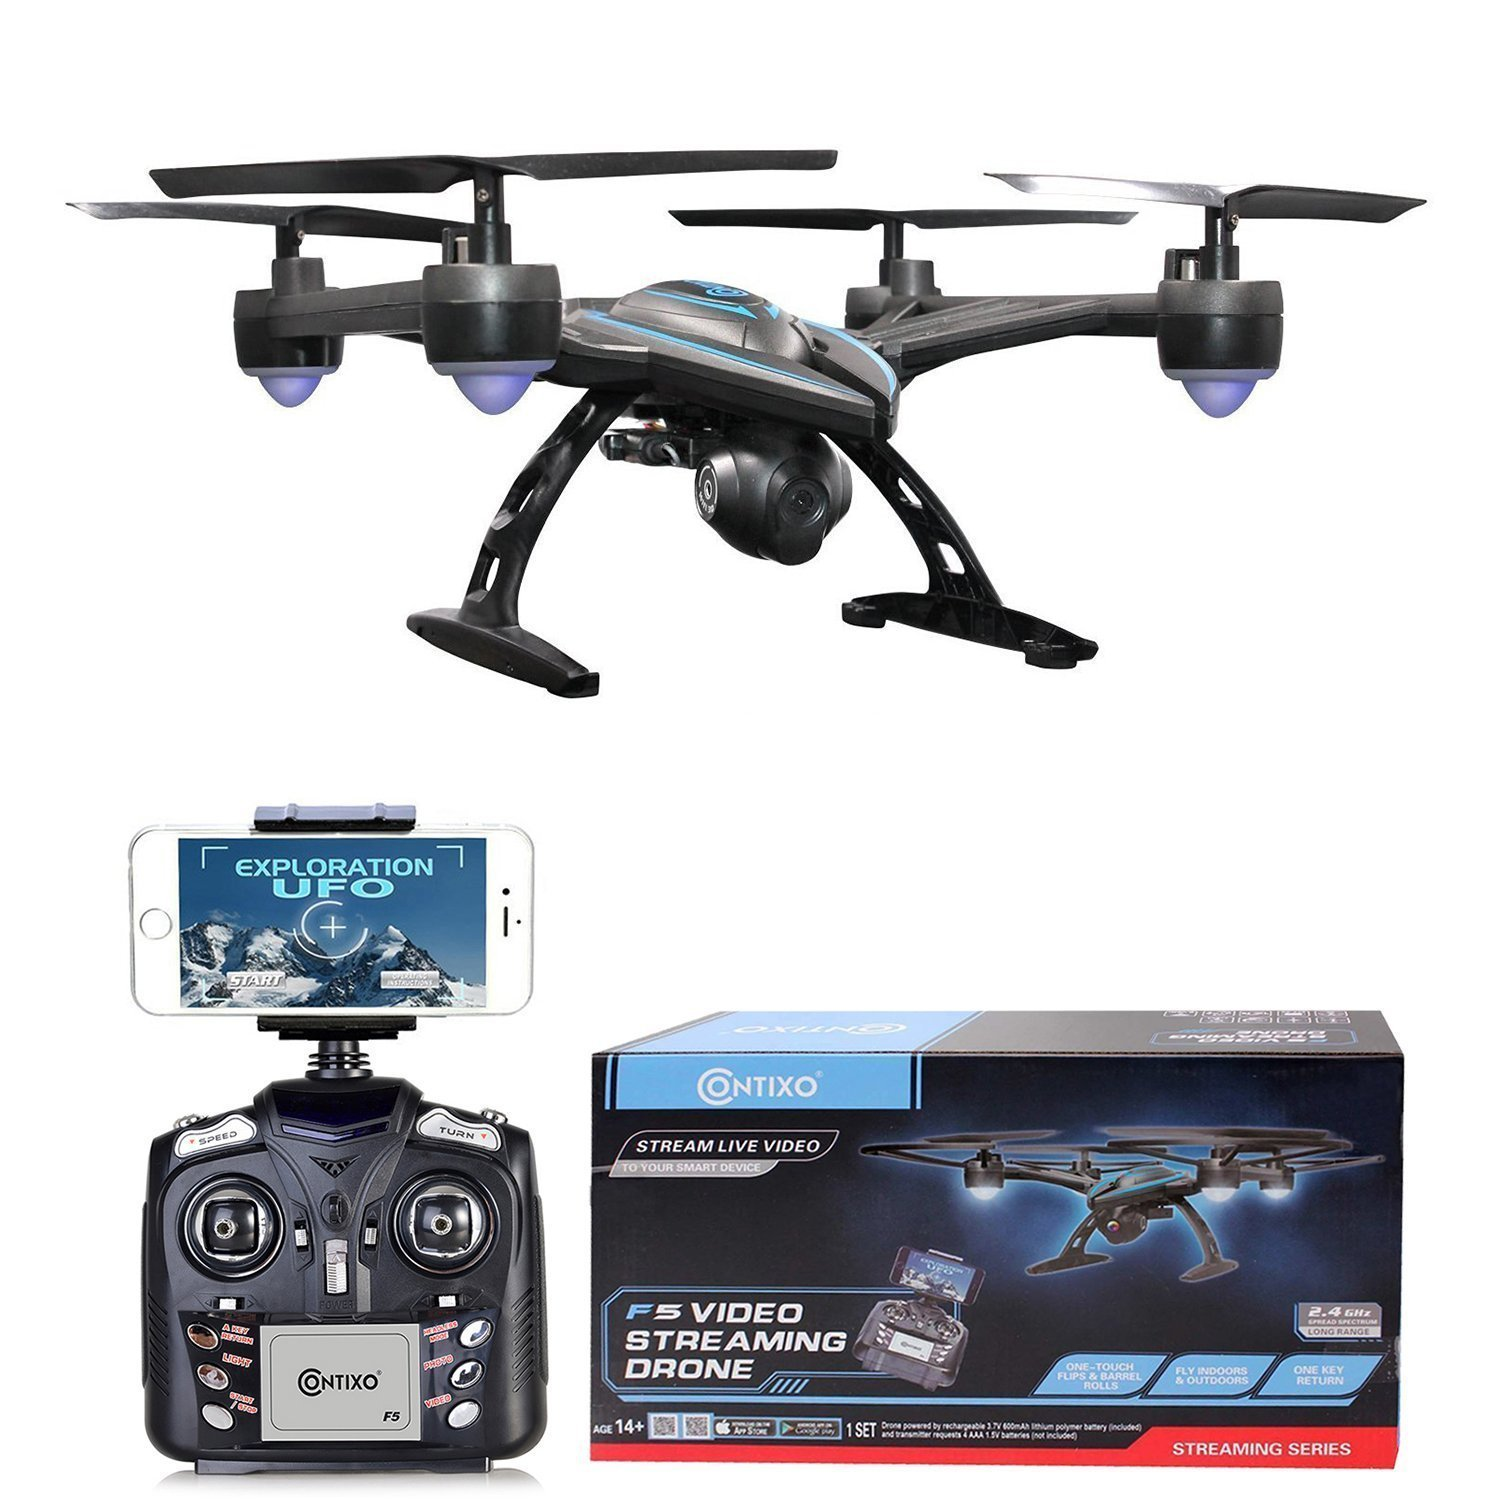 Contixo F5 Quadcopter Drone 720P Wi-Fi Live FPV HD Video Camera, Black Contixo Inc.